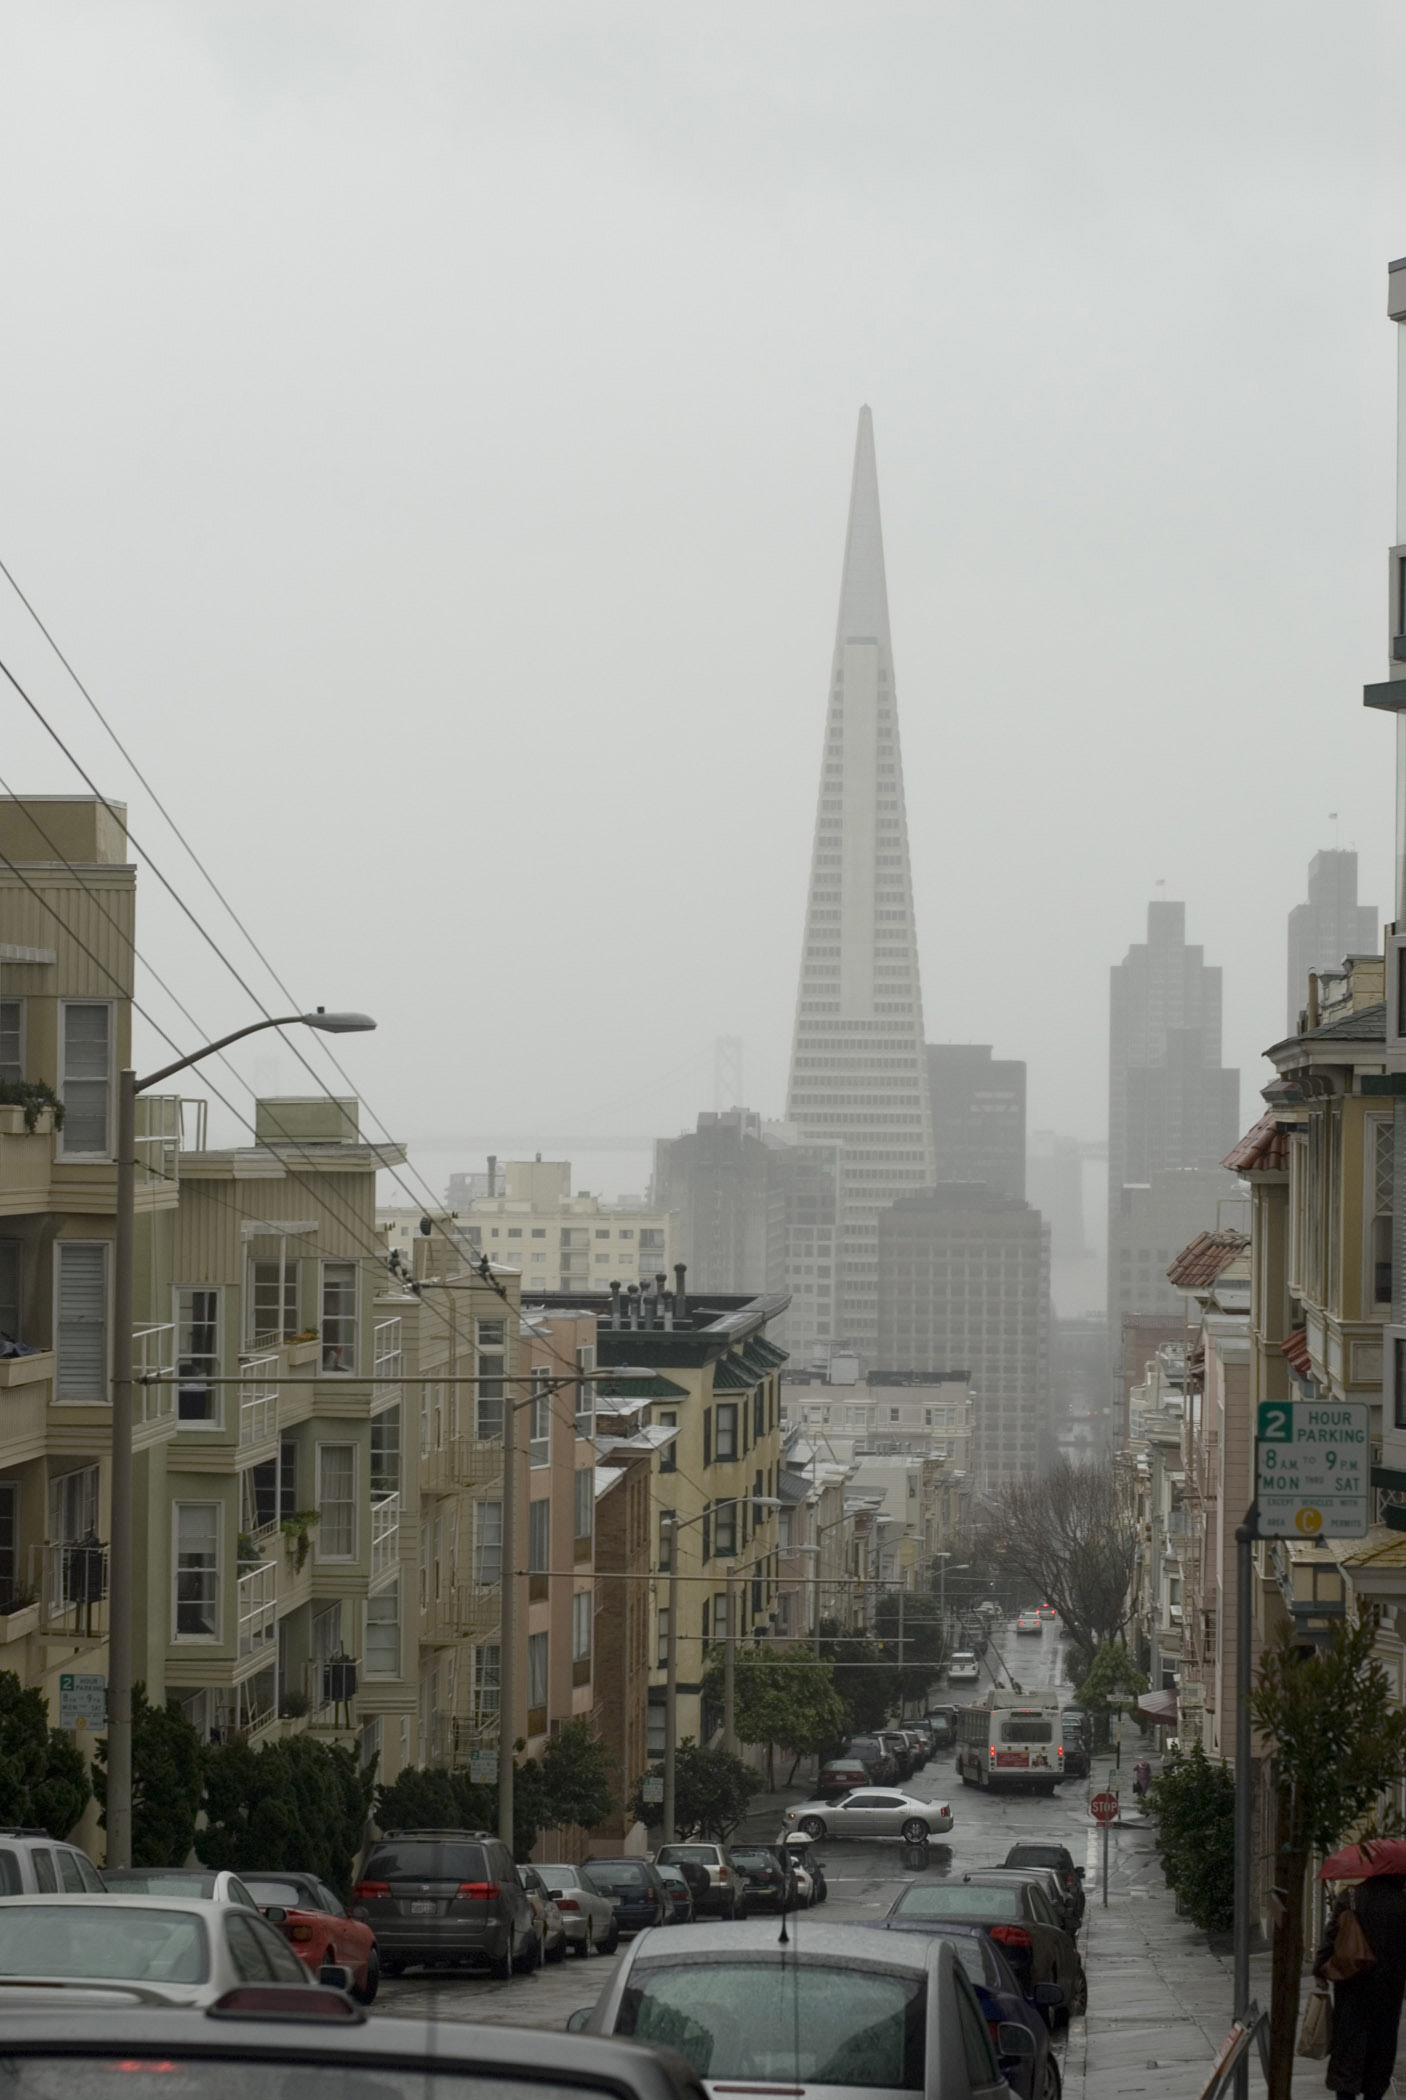 Rainy day in San Francisco, California, with a view down a steep residential hill towards the CBD and a spire through the mist